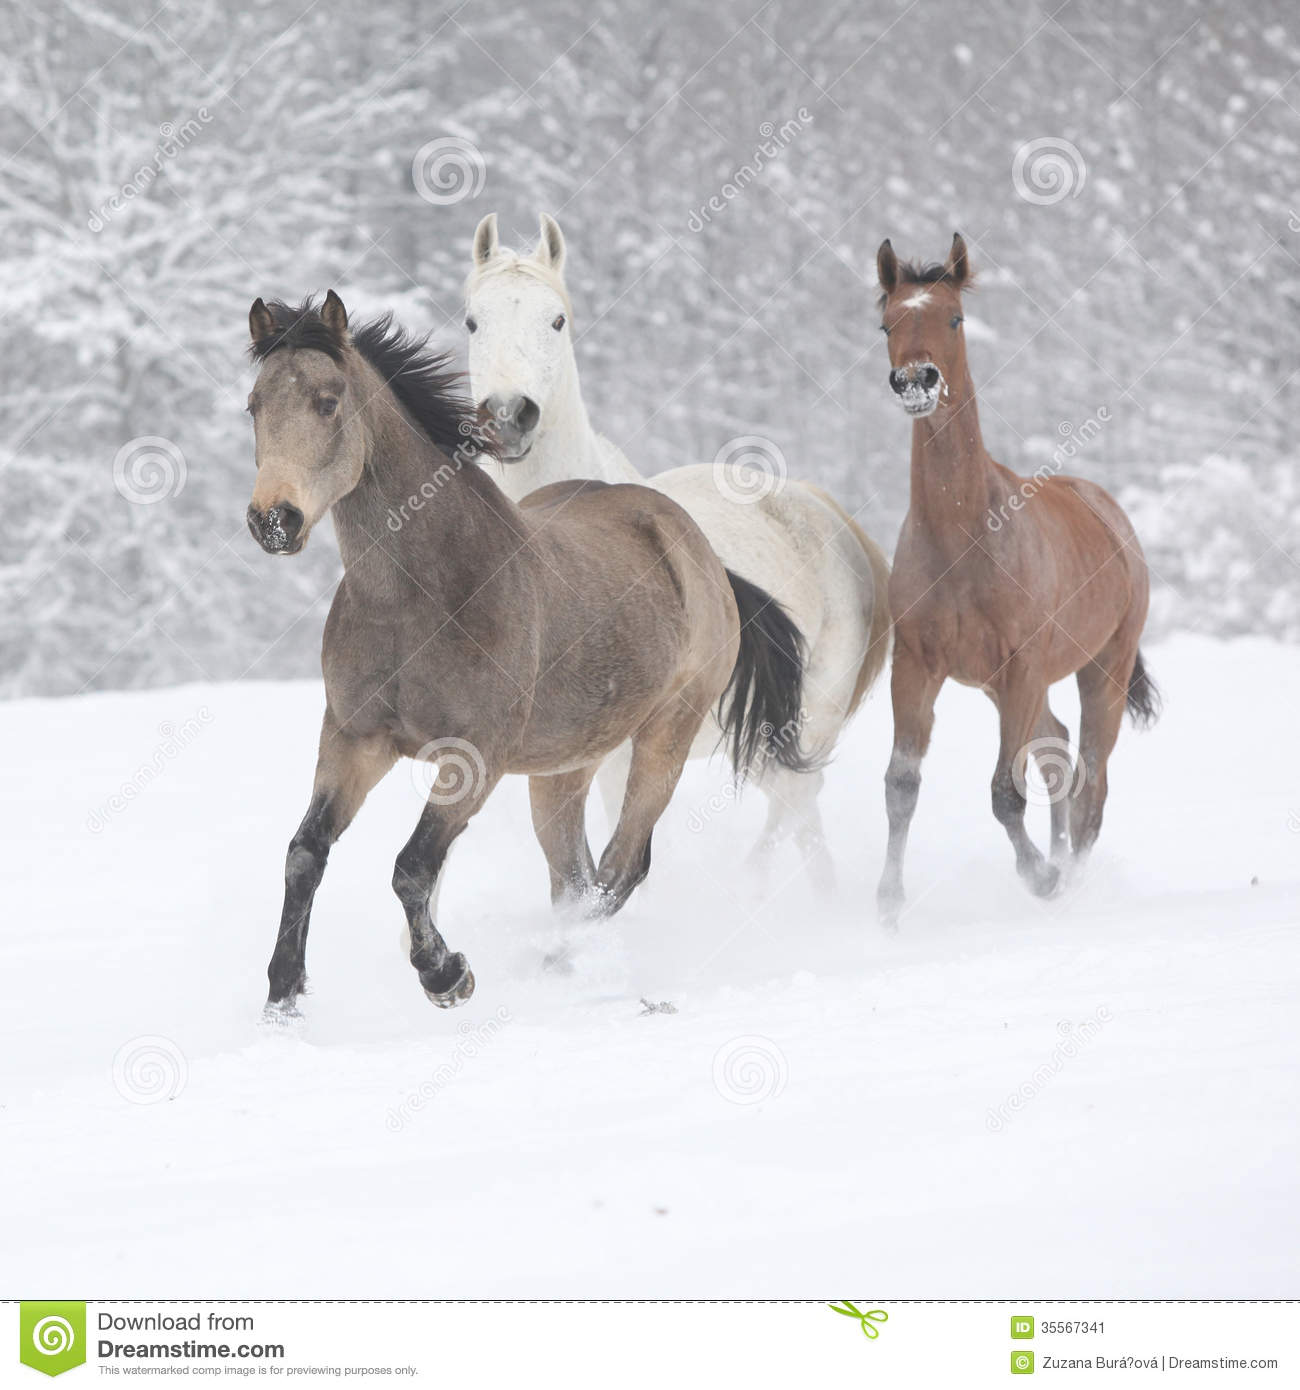 Free Download Of Christmas Wallpaper With Snow Falling Batch Of Horses Running In Winter Stock Image Image Of